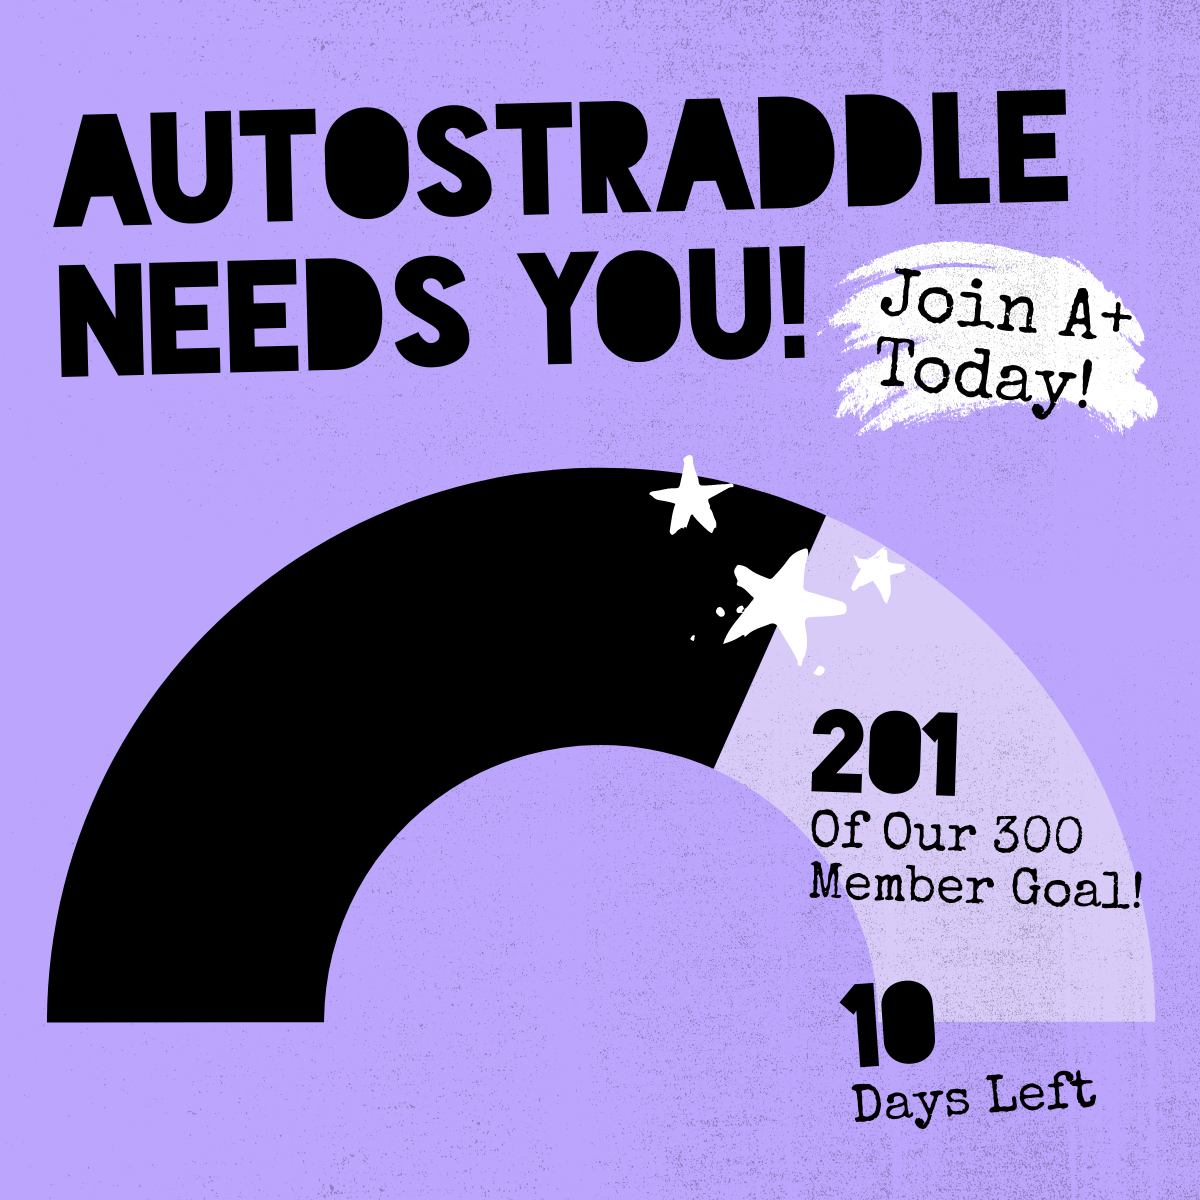 Autostraddle Needs You! Join A+ Today! 201 of our 300 Member Goal! 10 Days Left. Image description: an archway fills with black to visually indicate we are nearing our goal.